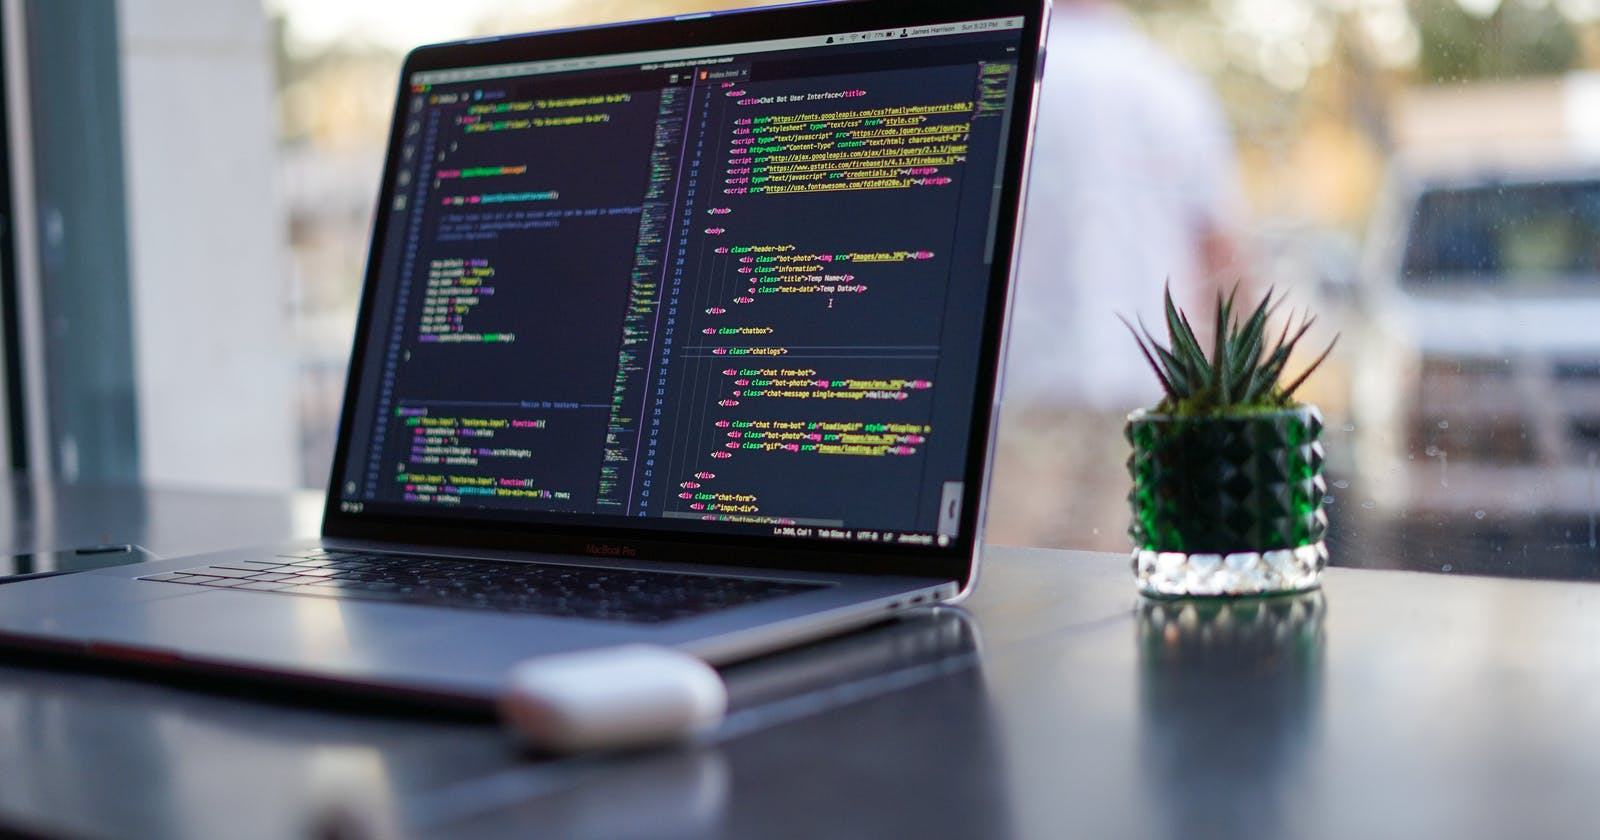 How to learn programming? - A developer's perspective